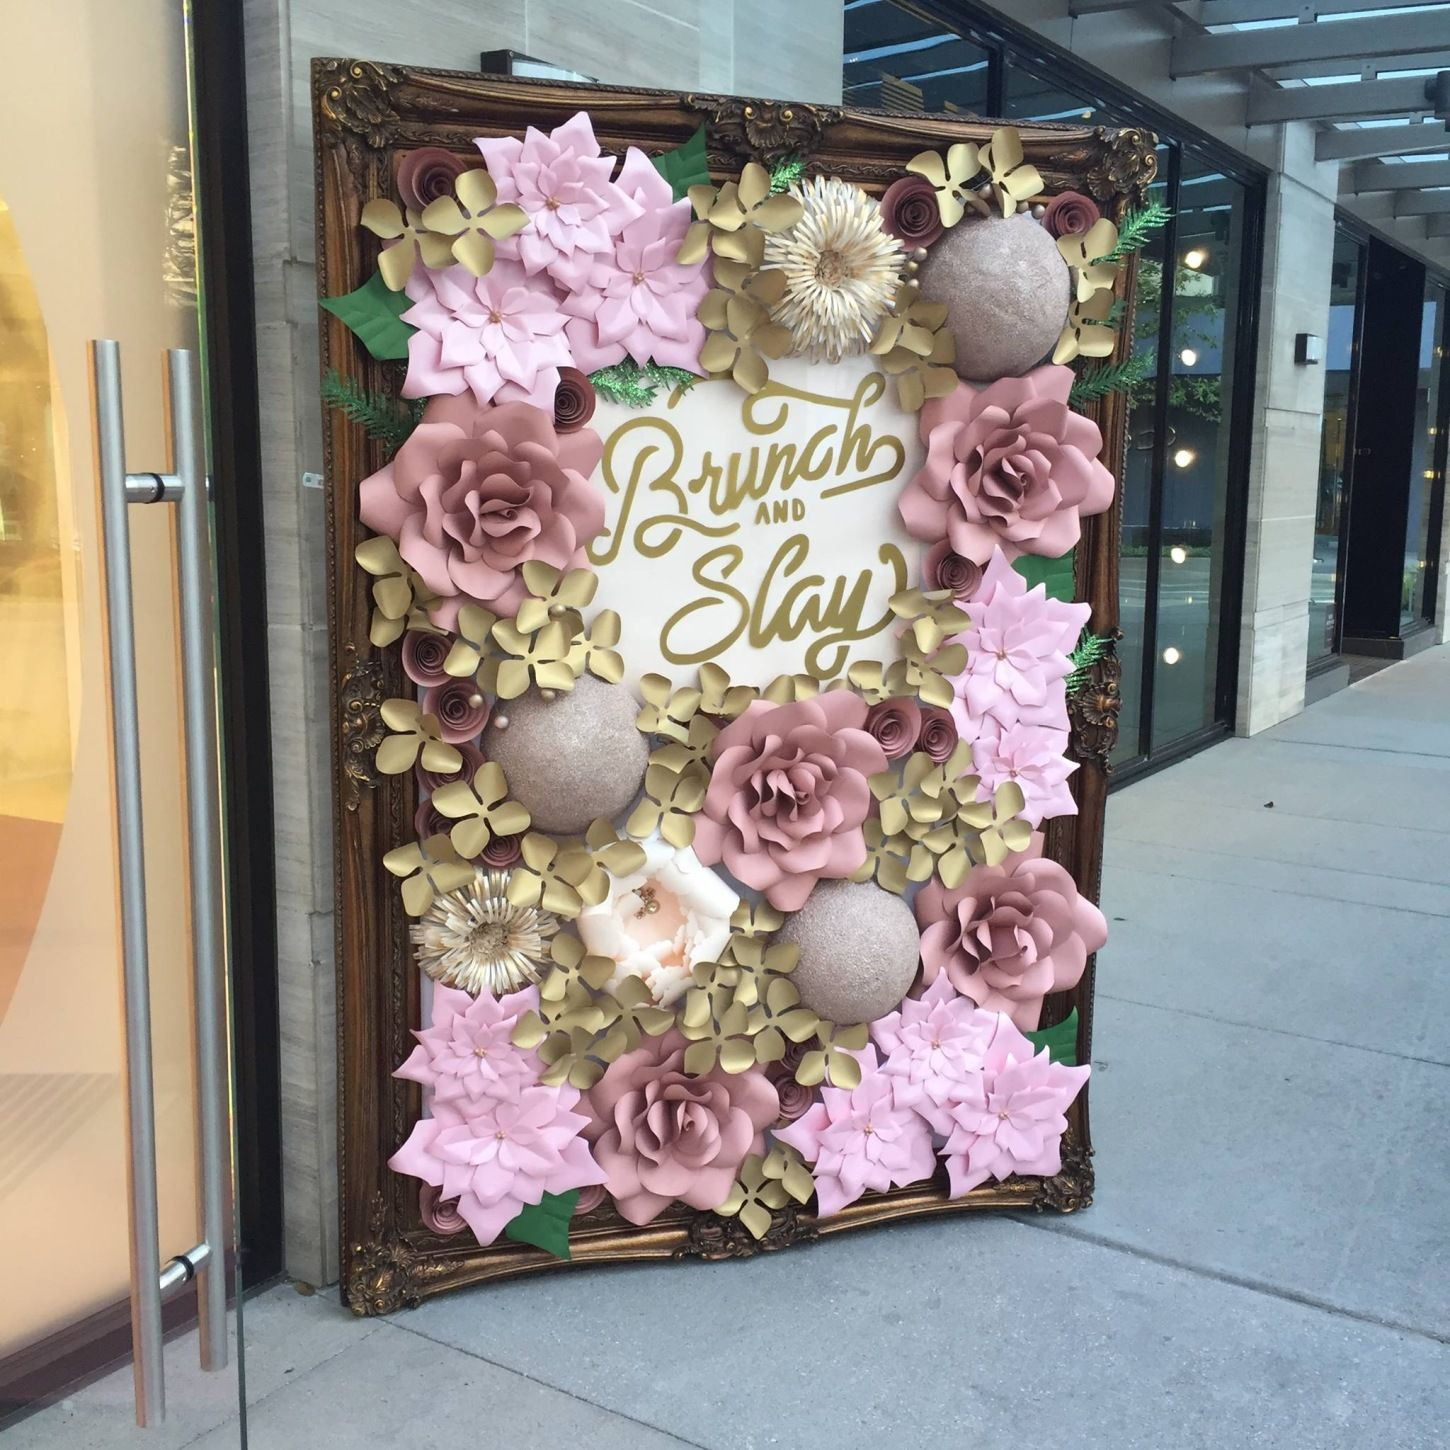 Paper Flower Wall Rental Paper Flower Wall Rentals and Paper Flower Arch Rental for Weddings bridal showers baby showers quinceaneras